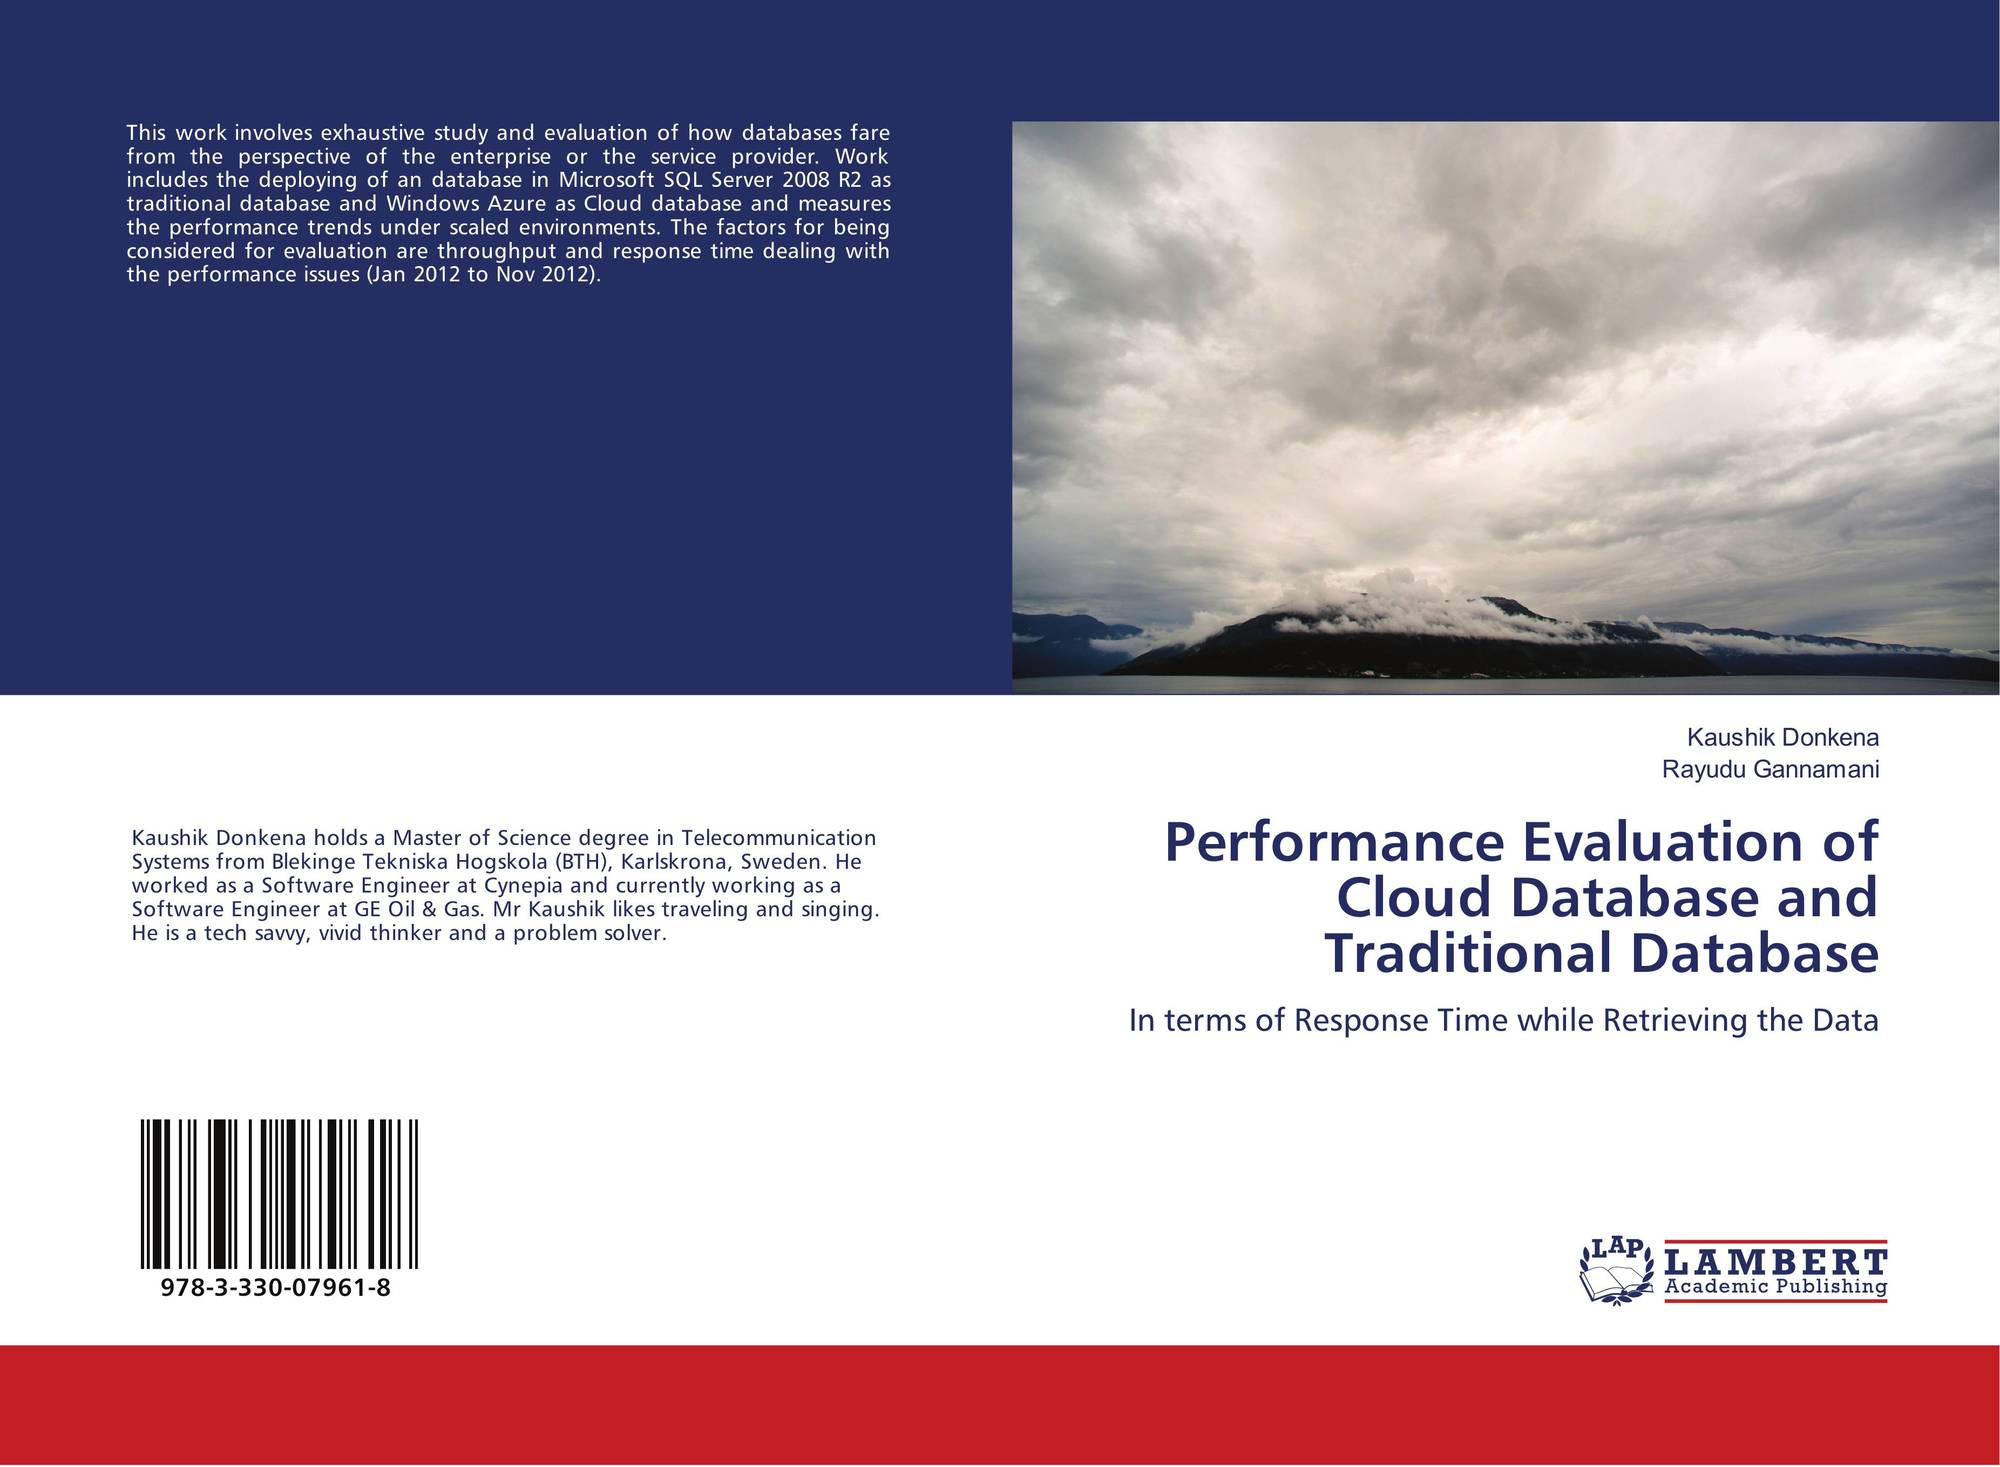 Performance Evaluation of Cloud Database and Traditional